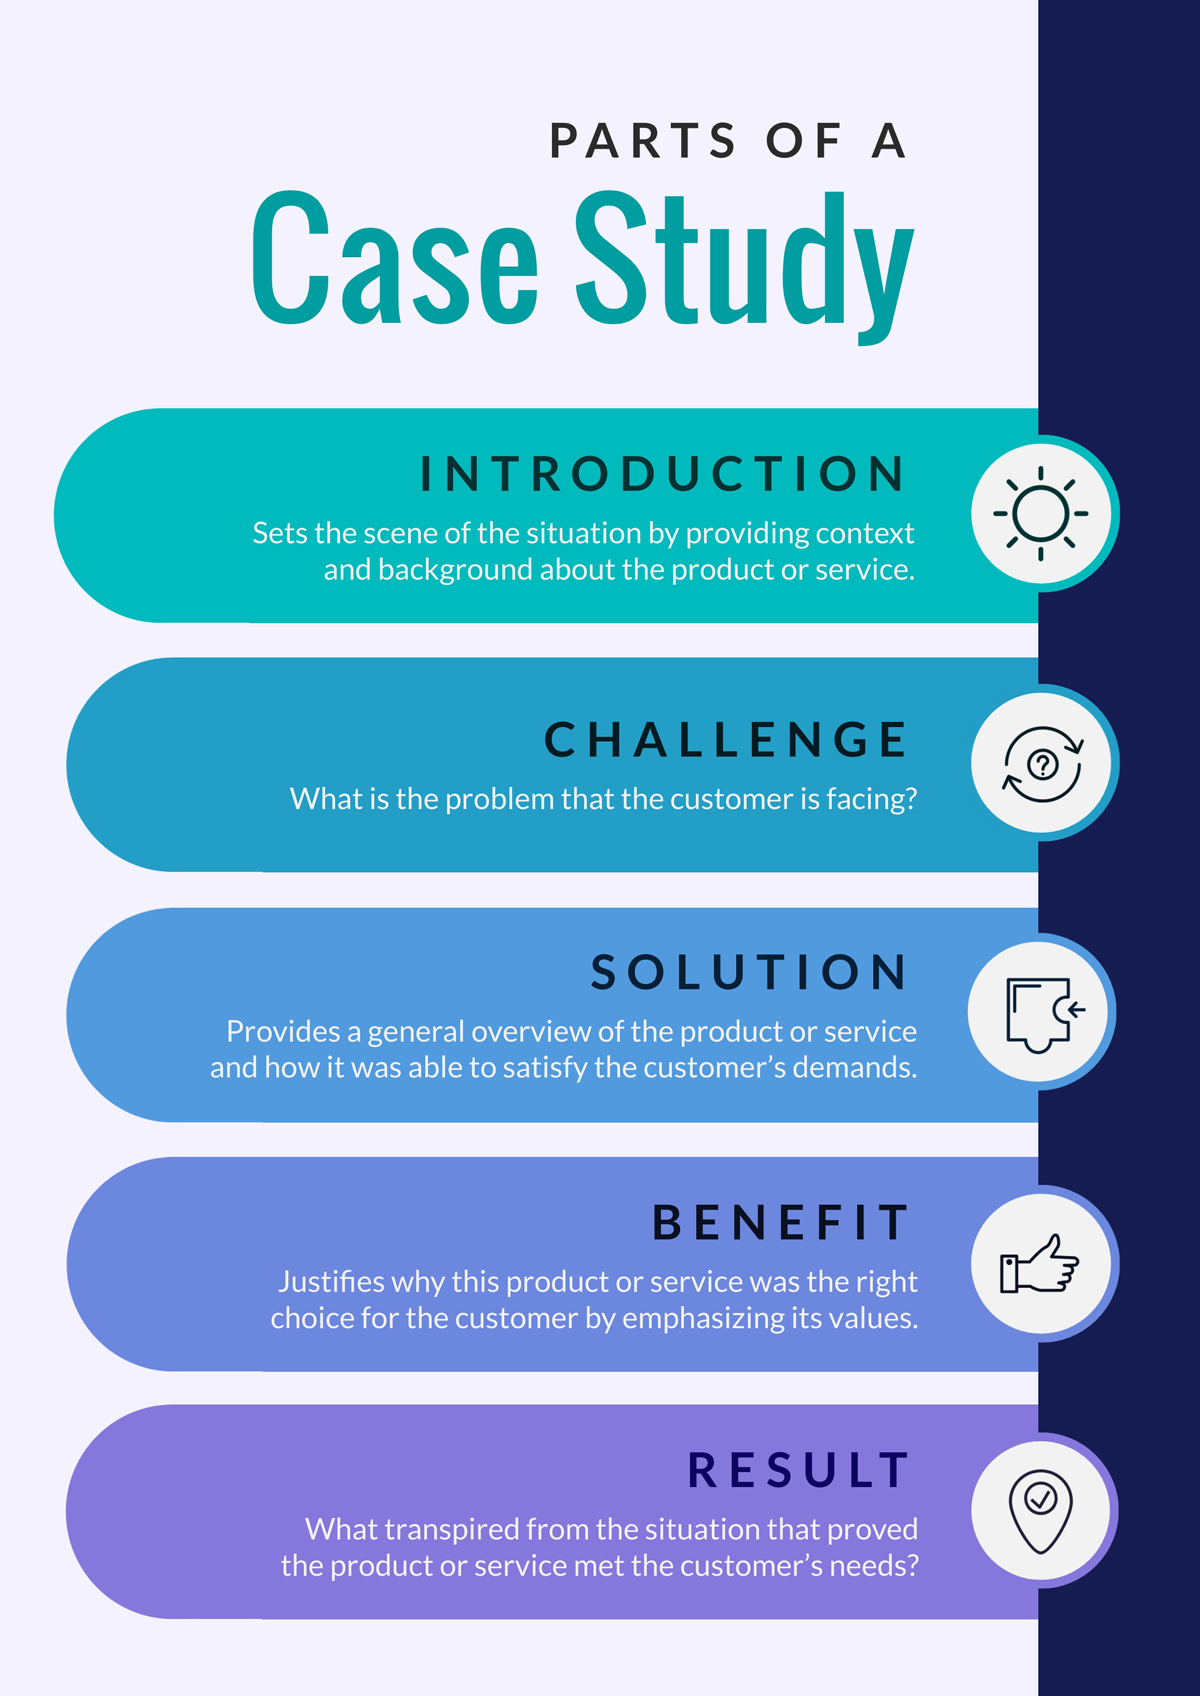 An informational infographic template showcasing parts of a case study available to customize in Visme.